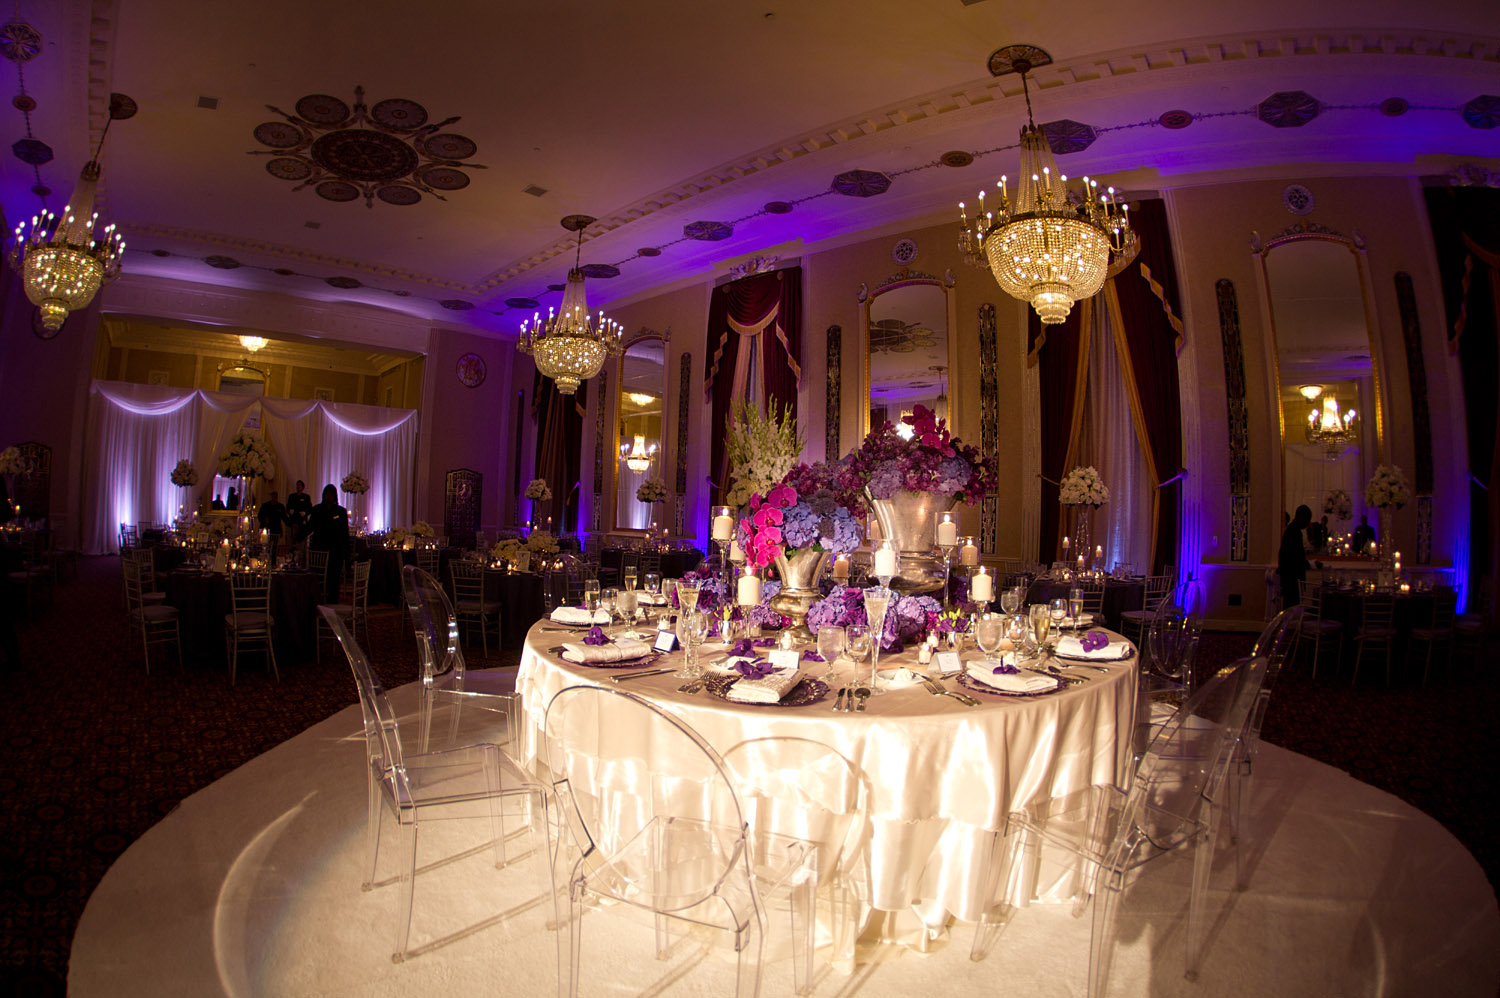 TOP DESTINATION WEDDING PHOTOGRAPHER LEXIA FRANK PHOTOGRAPHS PRO FOOTBALL PLAYER GREEN BAY PACKER BRYAN BULAGAS WEDDING AT THE HILTON CITY CENTER IN DOWNTOWN MILWAUKEE. LUCITE CLEAR CHAIRS WITH PURPLE FLORAL